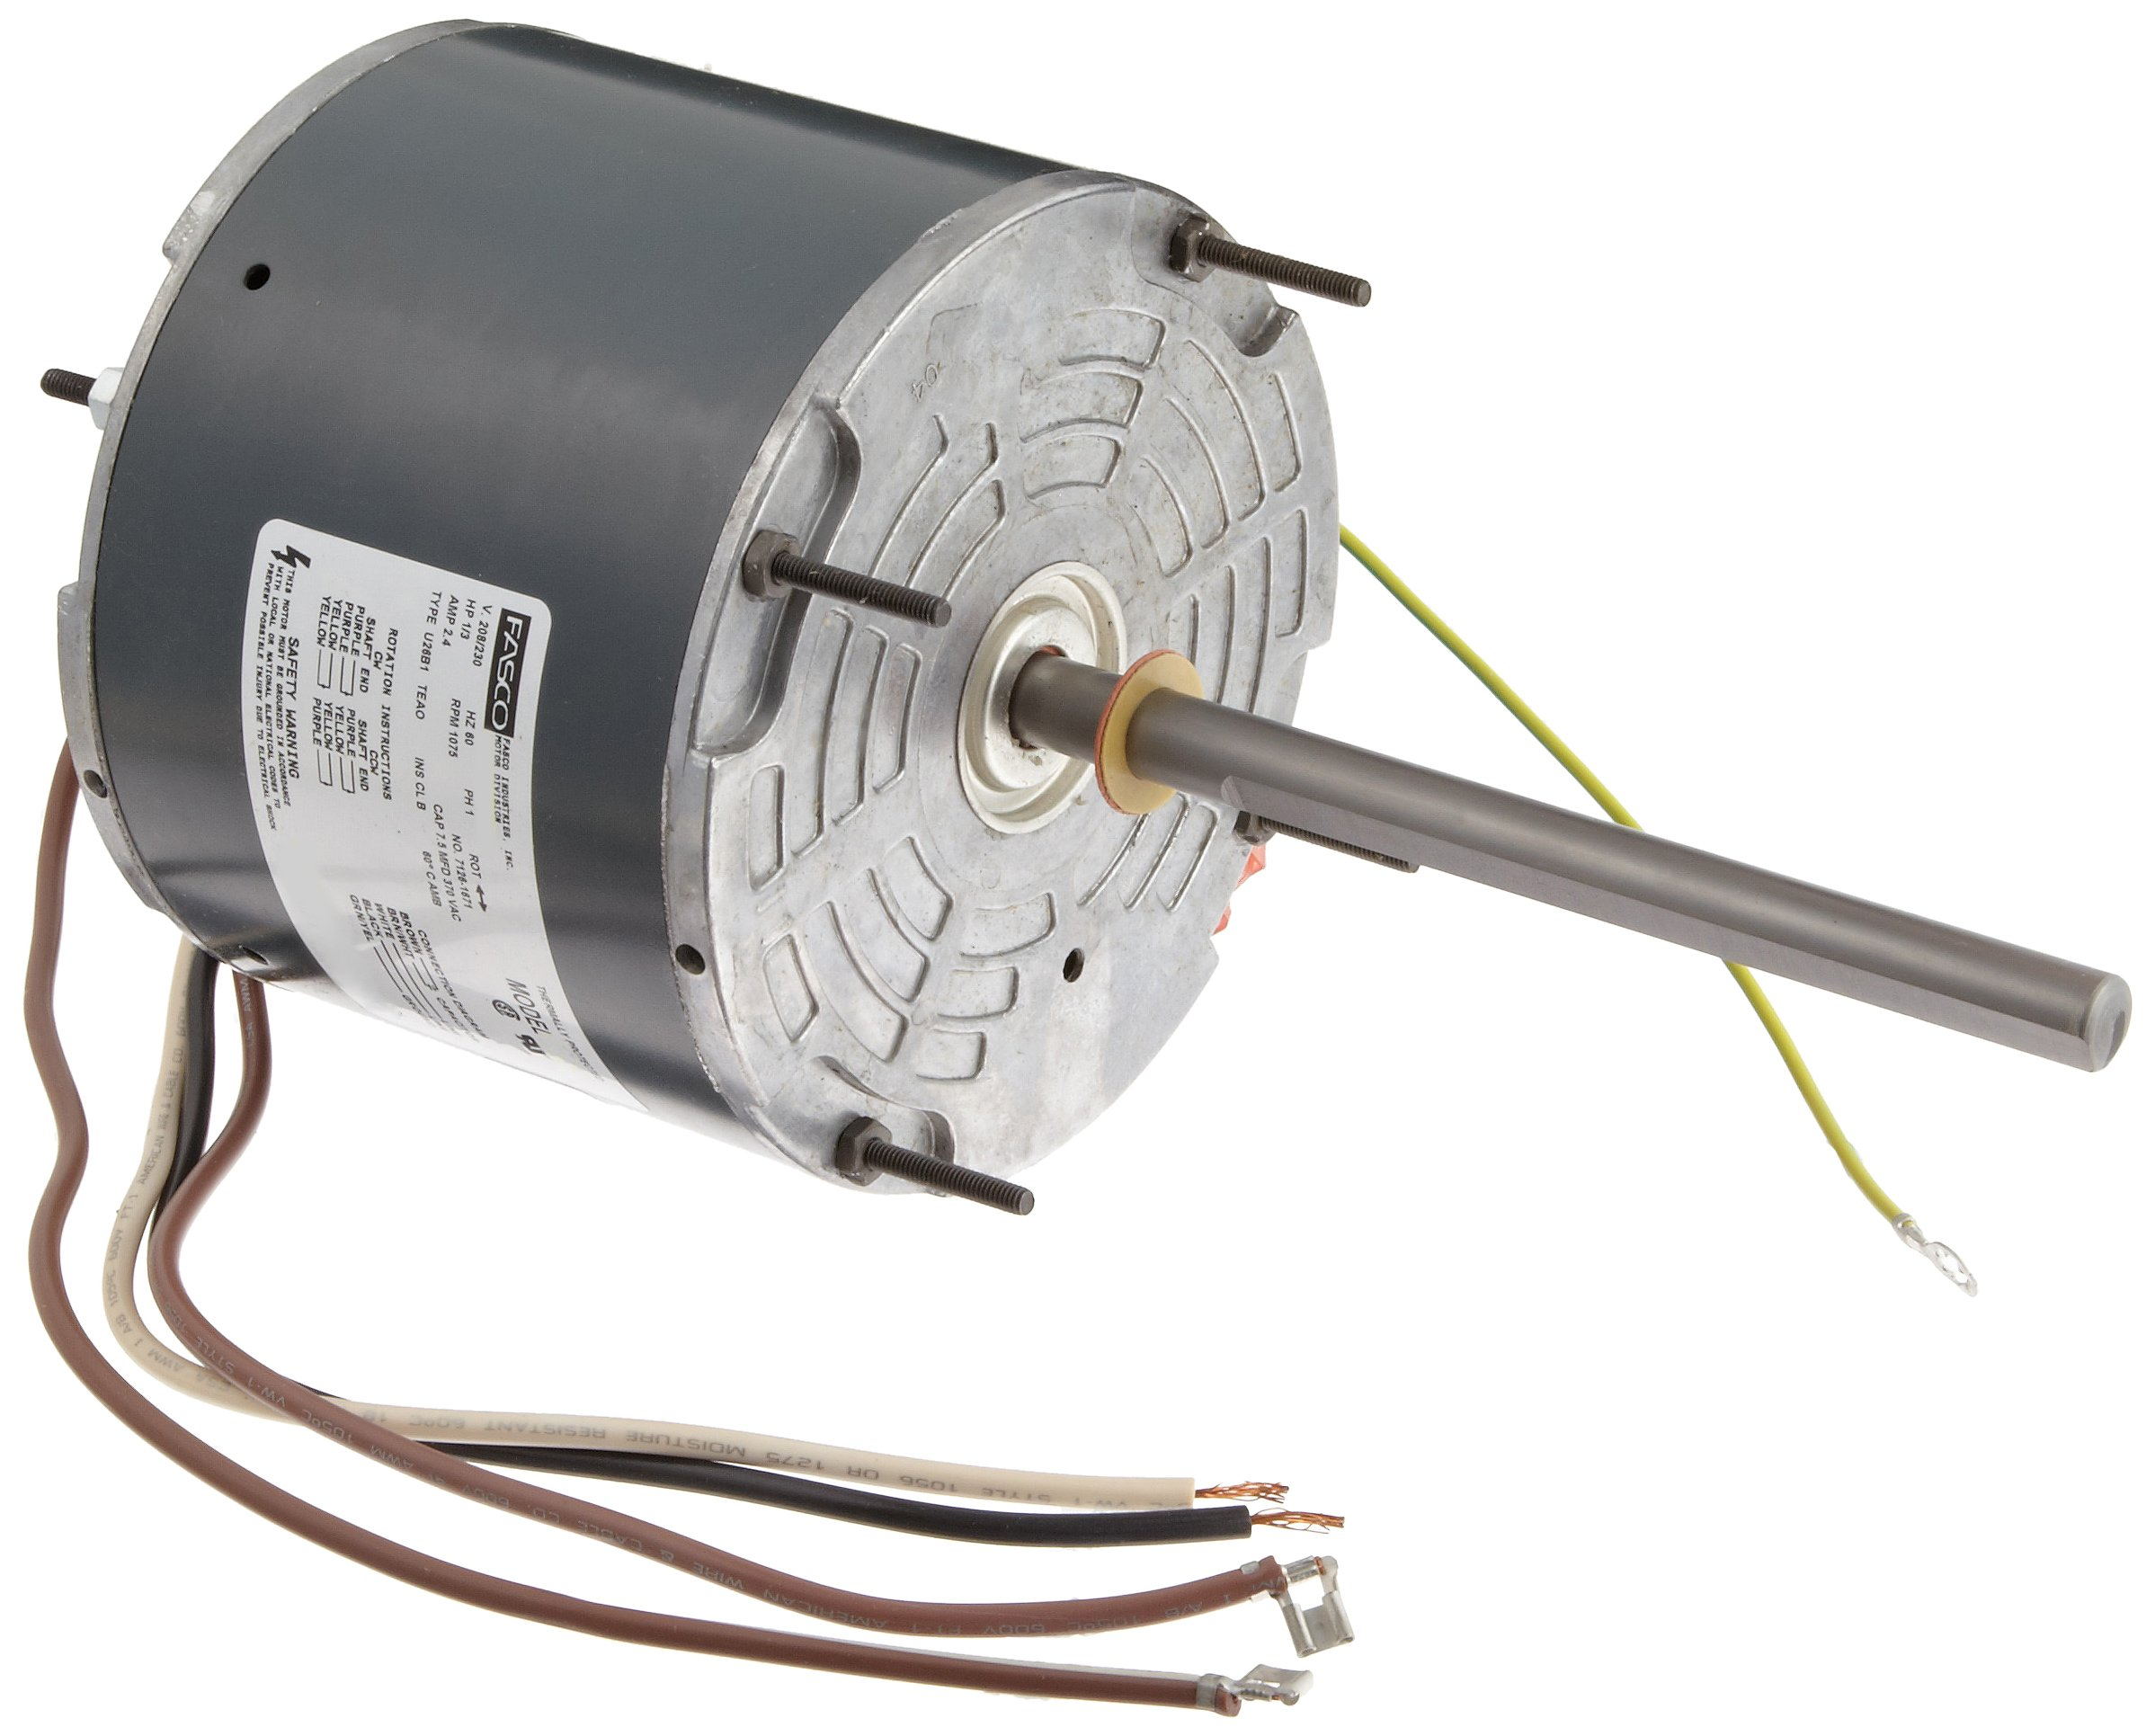 Fasco D908 5.6'' Frame Totally Enclosed Permanent Split Capacitor Condenser Fan Motor with Sleeve Bearing, 1/3HP, 1075rpm, 208-230V, 60Hz, 2.4 amps